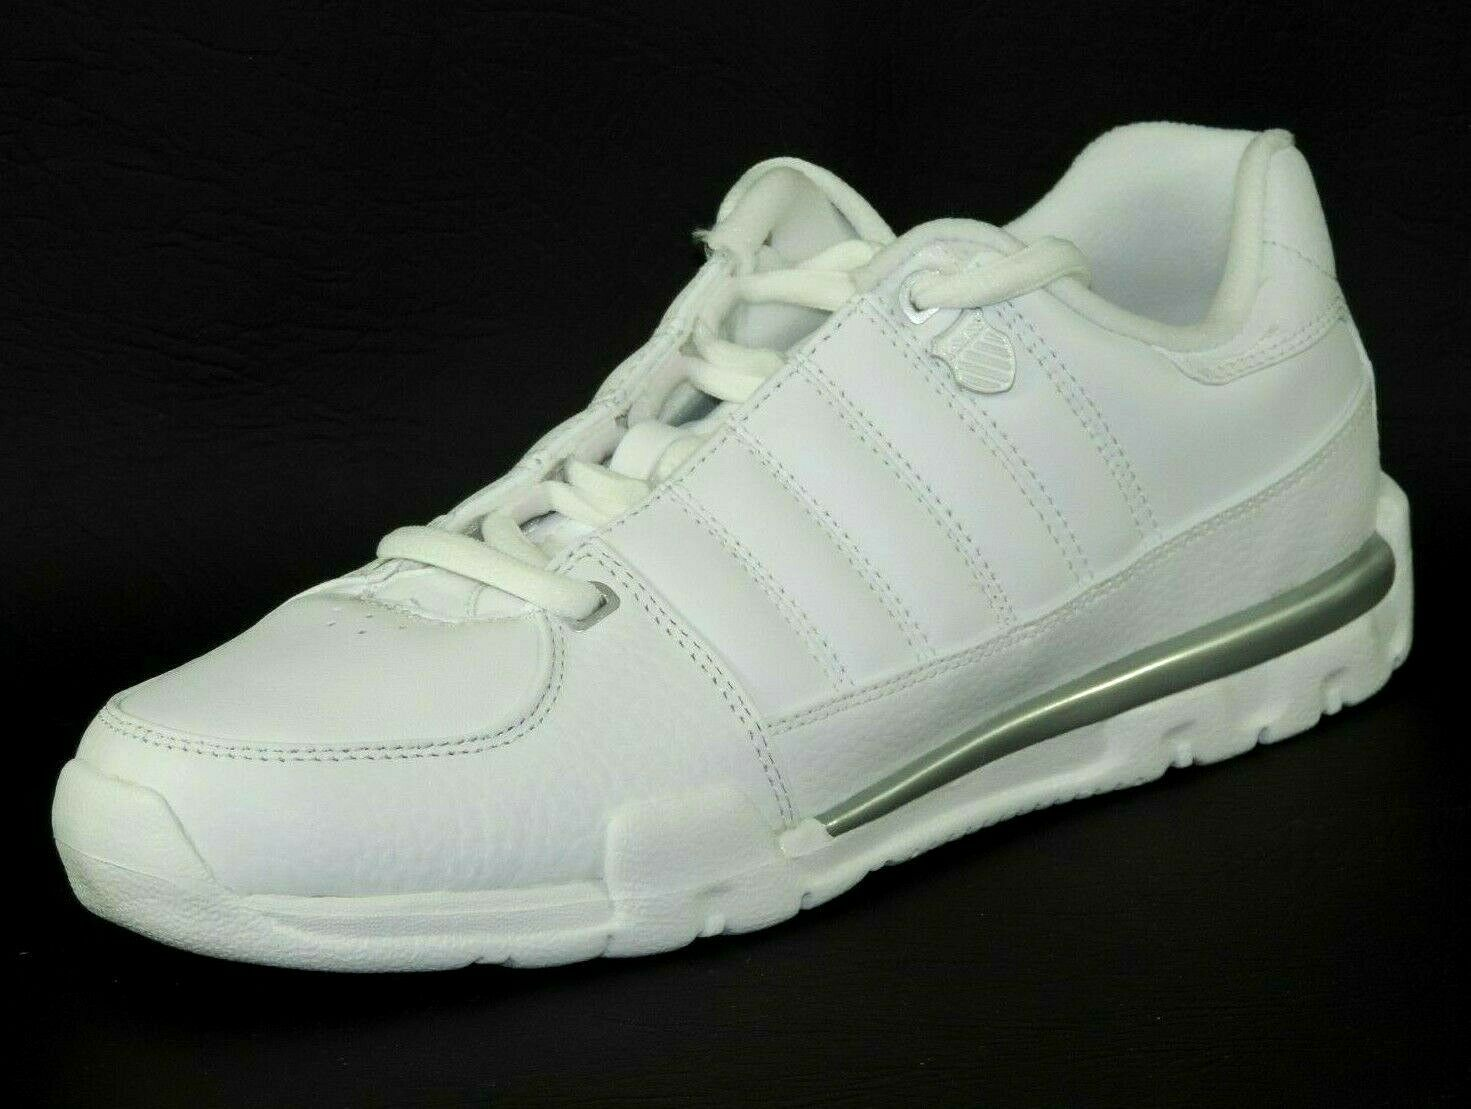 K-Swiss KAYESTEE Mens Shoes 02153147 White Leather Tennis Running Dead Stock